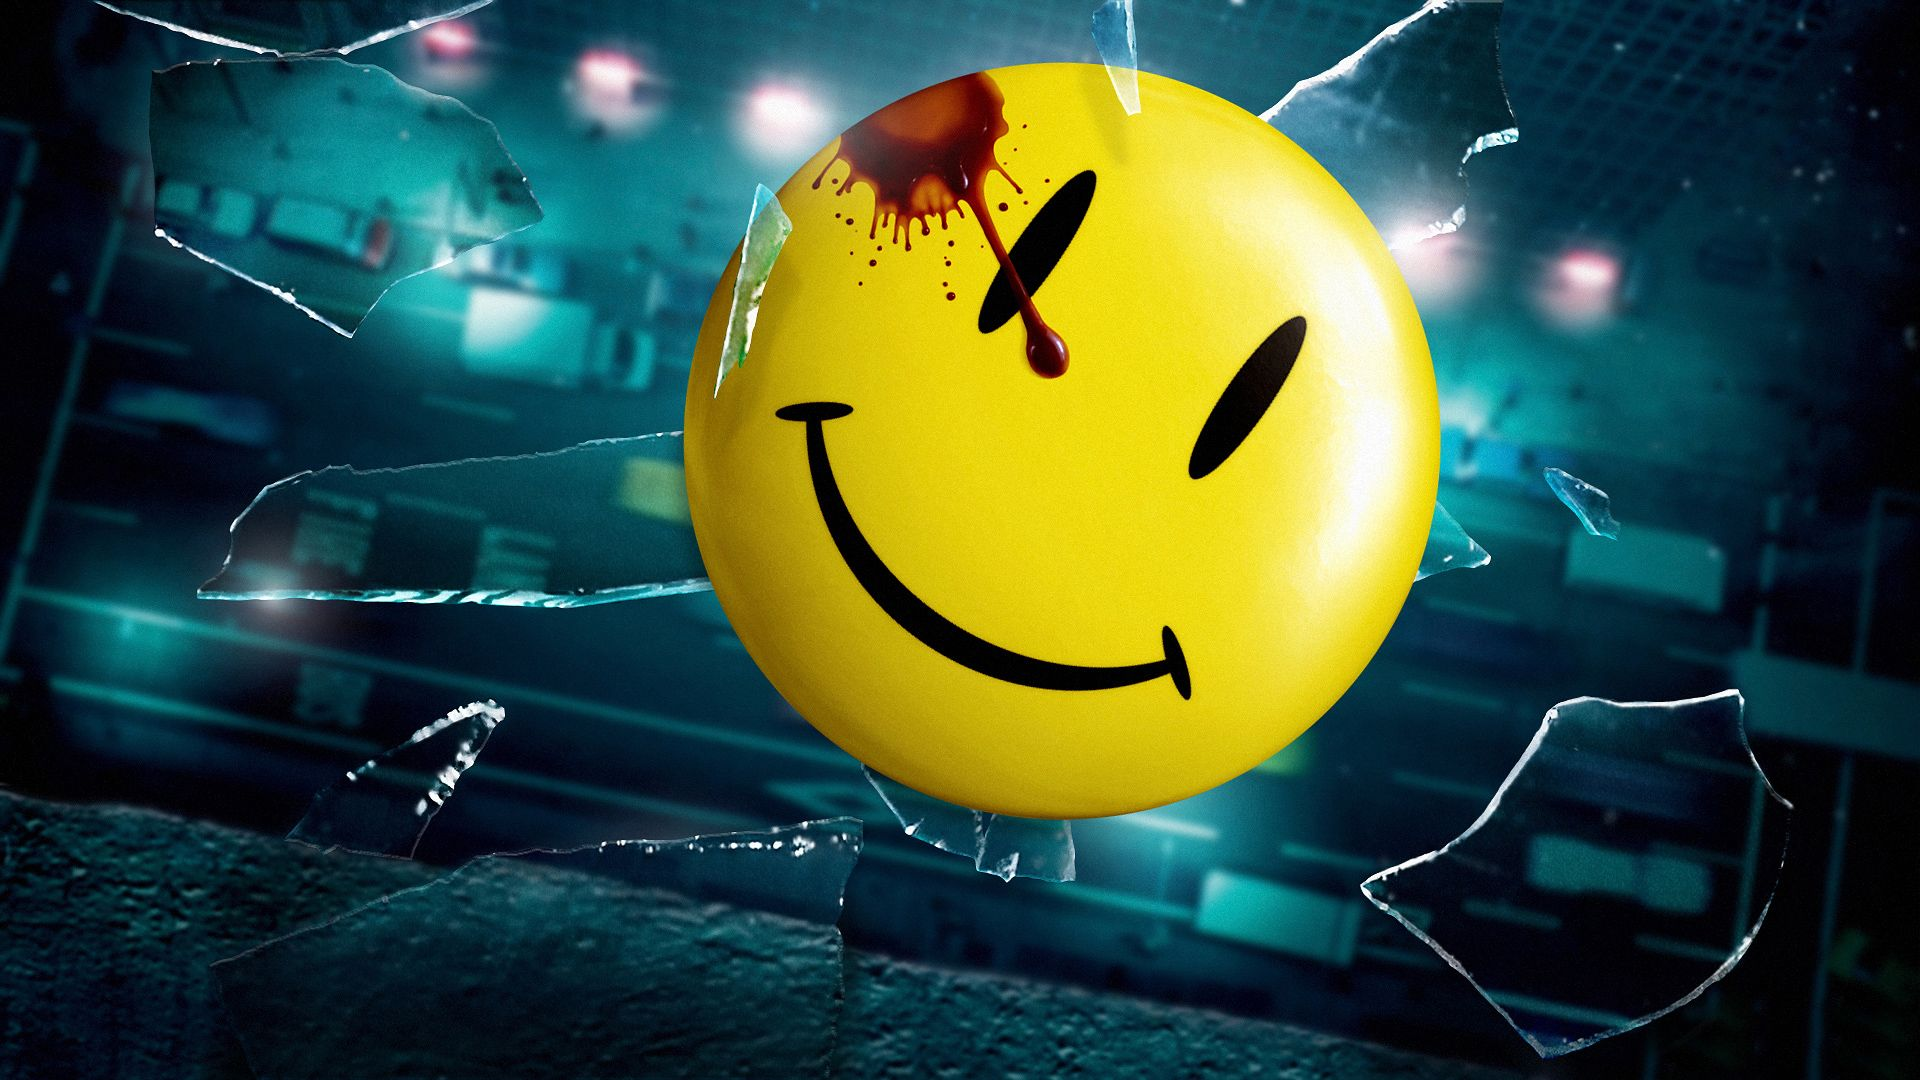 Hd Wallpapers Watchmen Smiley Hd Wallpaper 2080 Wallpaper Wall Height Com Wallpapers Para Pc Fundos Para Pc Batman Vs